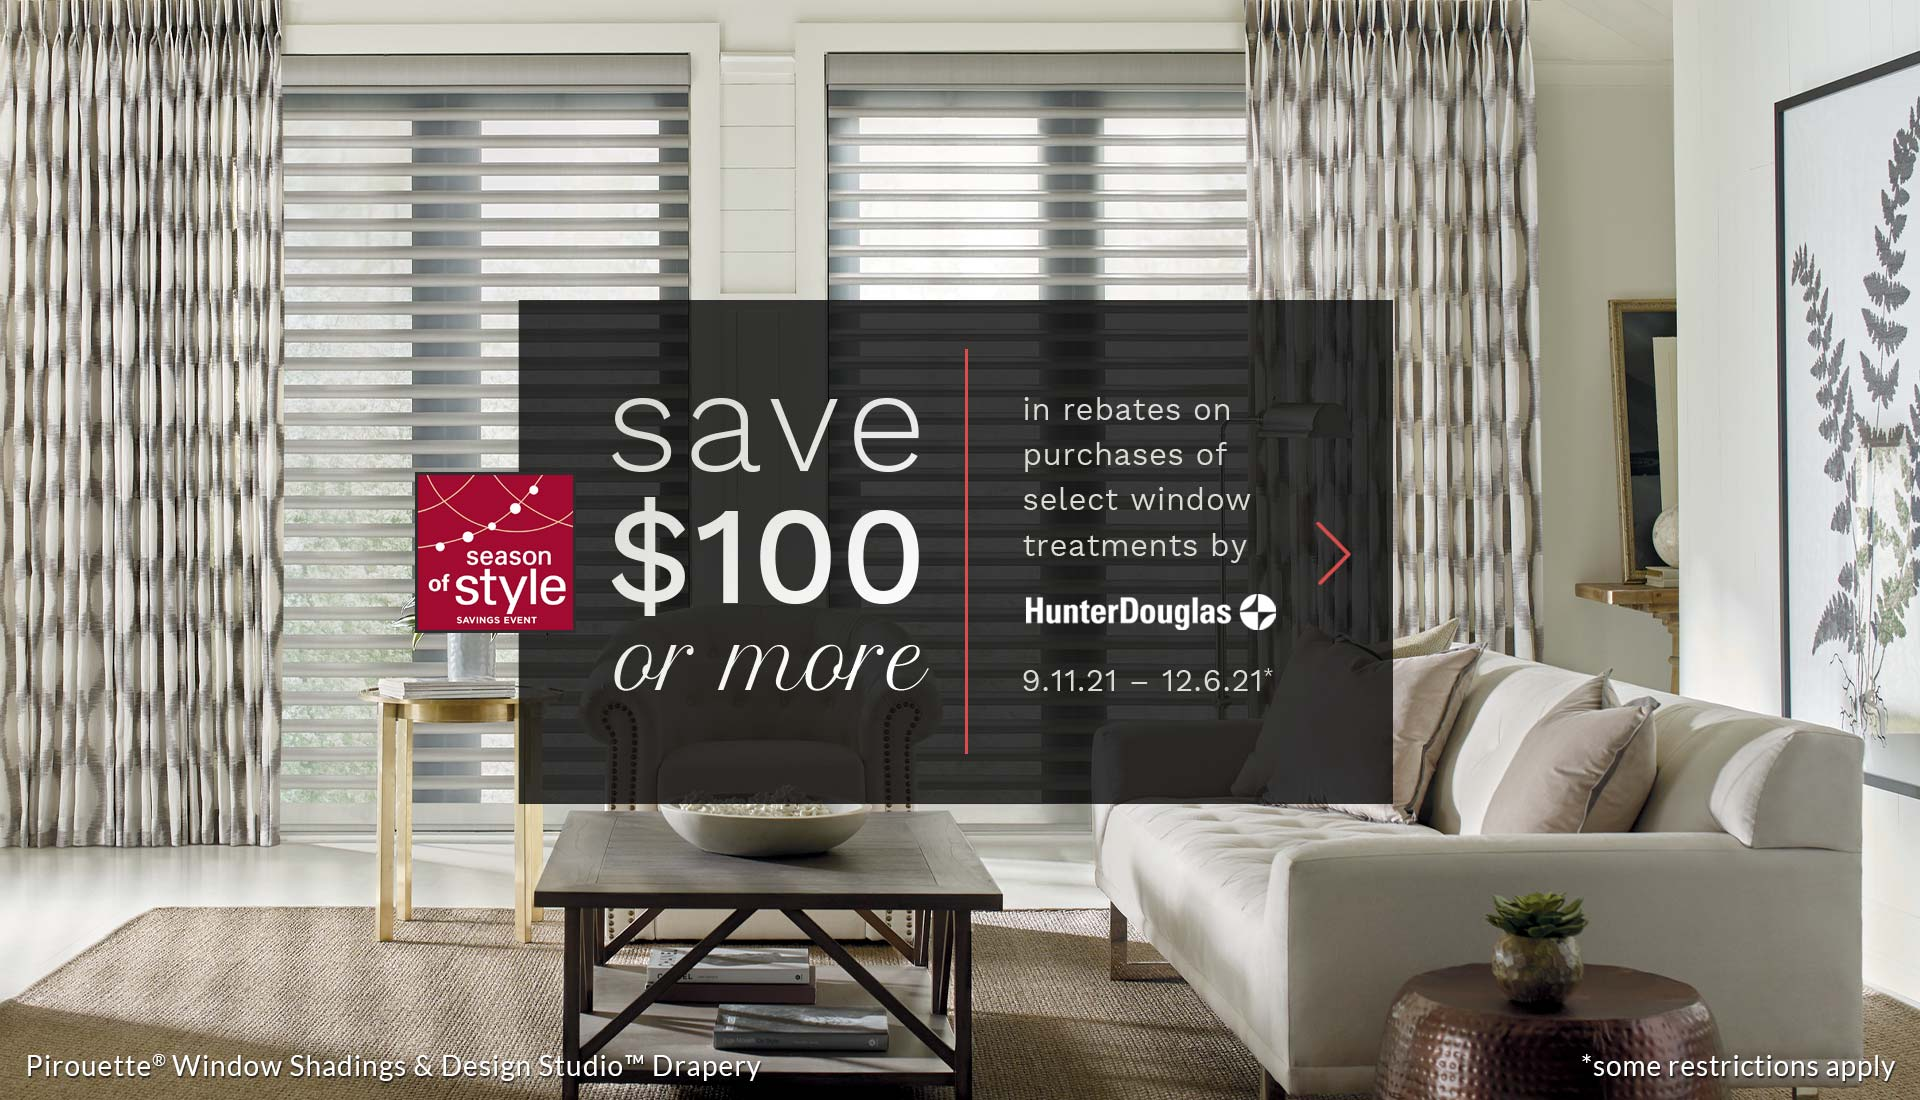 with season of style save 100 or more on window treatments